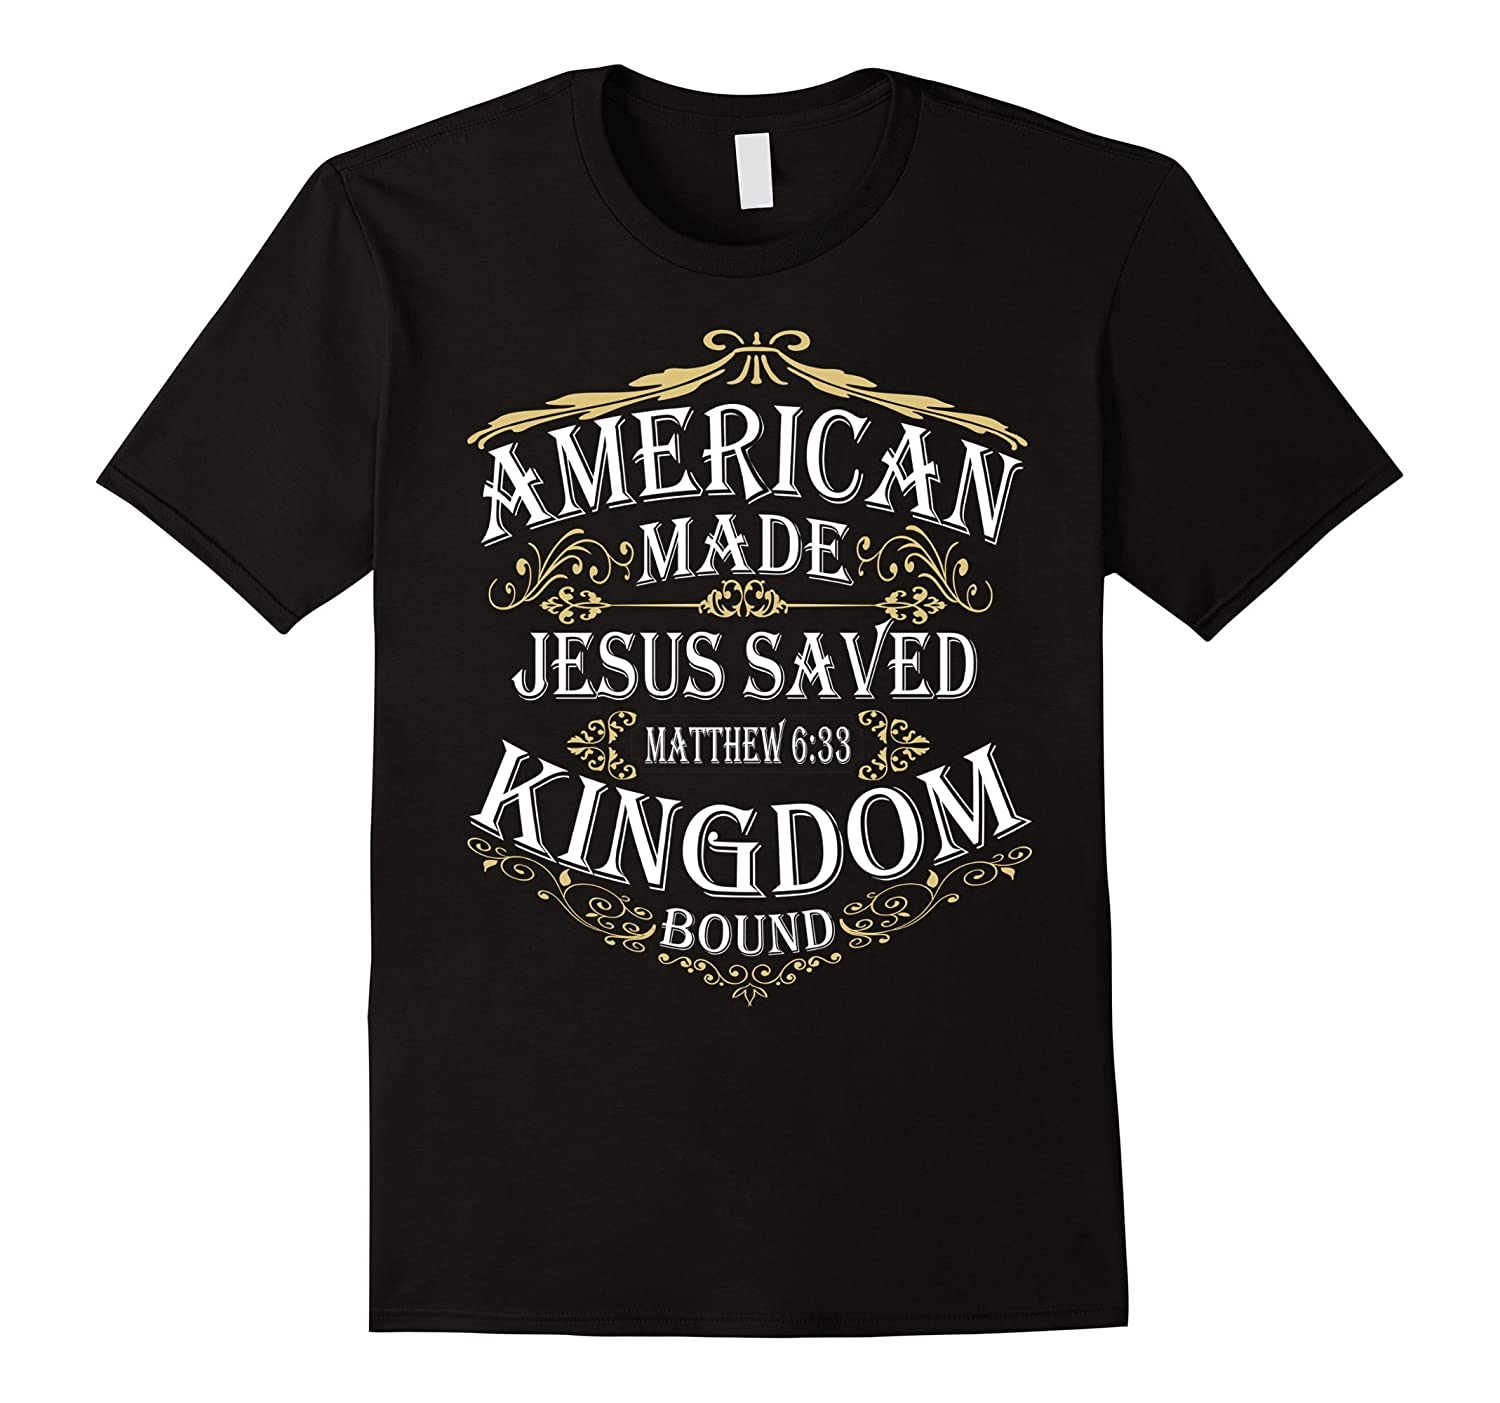 American Made, Jesus Saved, Kingdom Bound